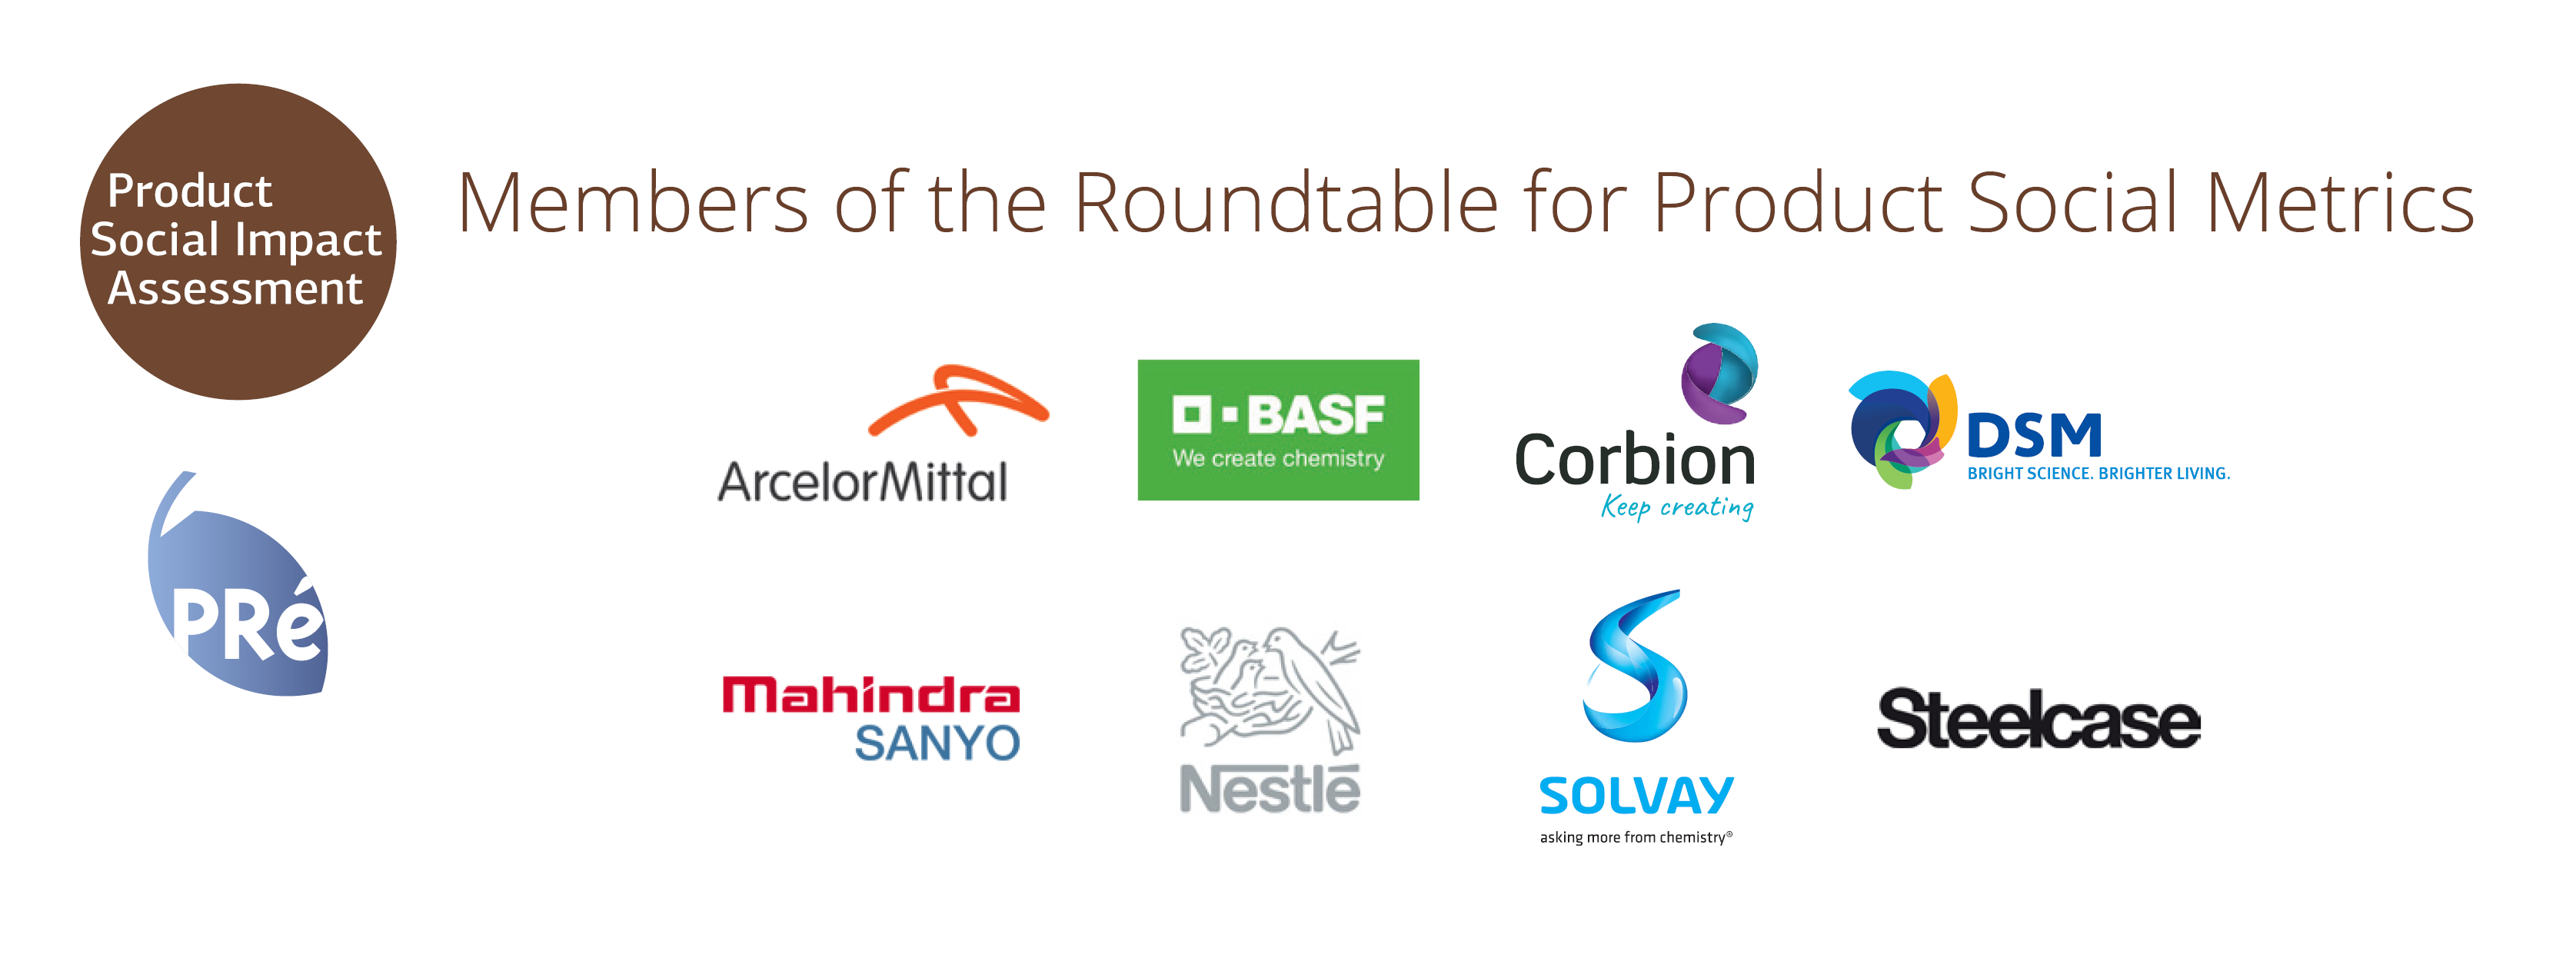 Members of the Roundtable for Product Social Metrics